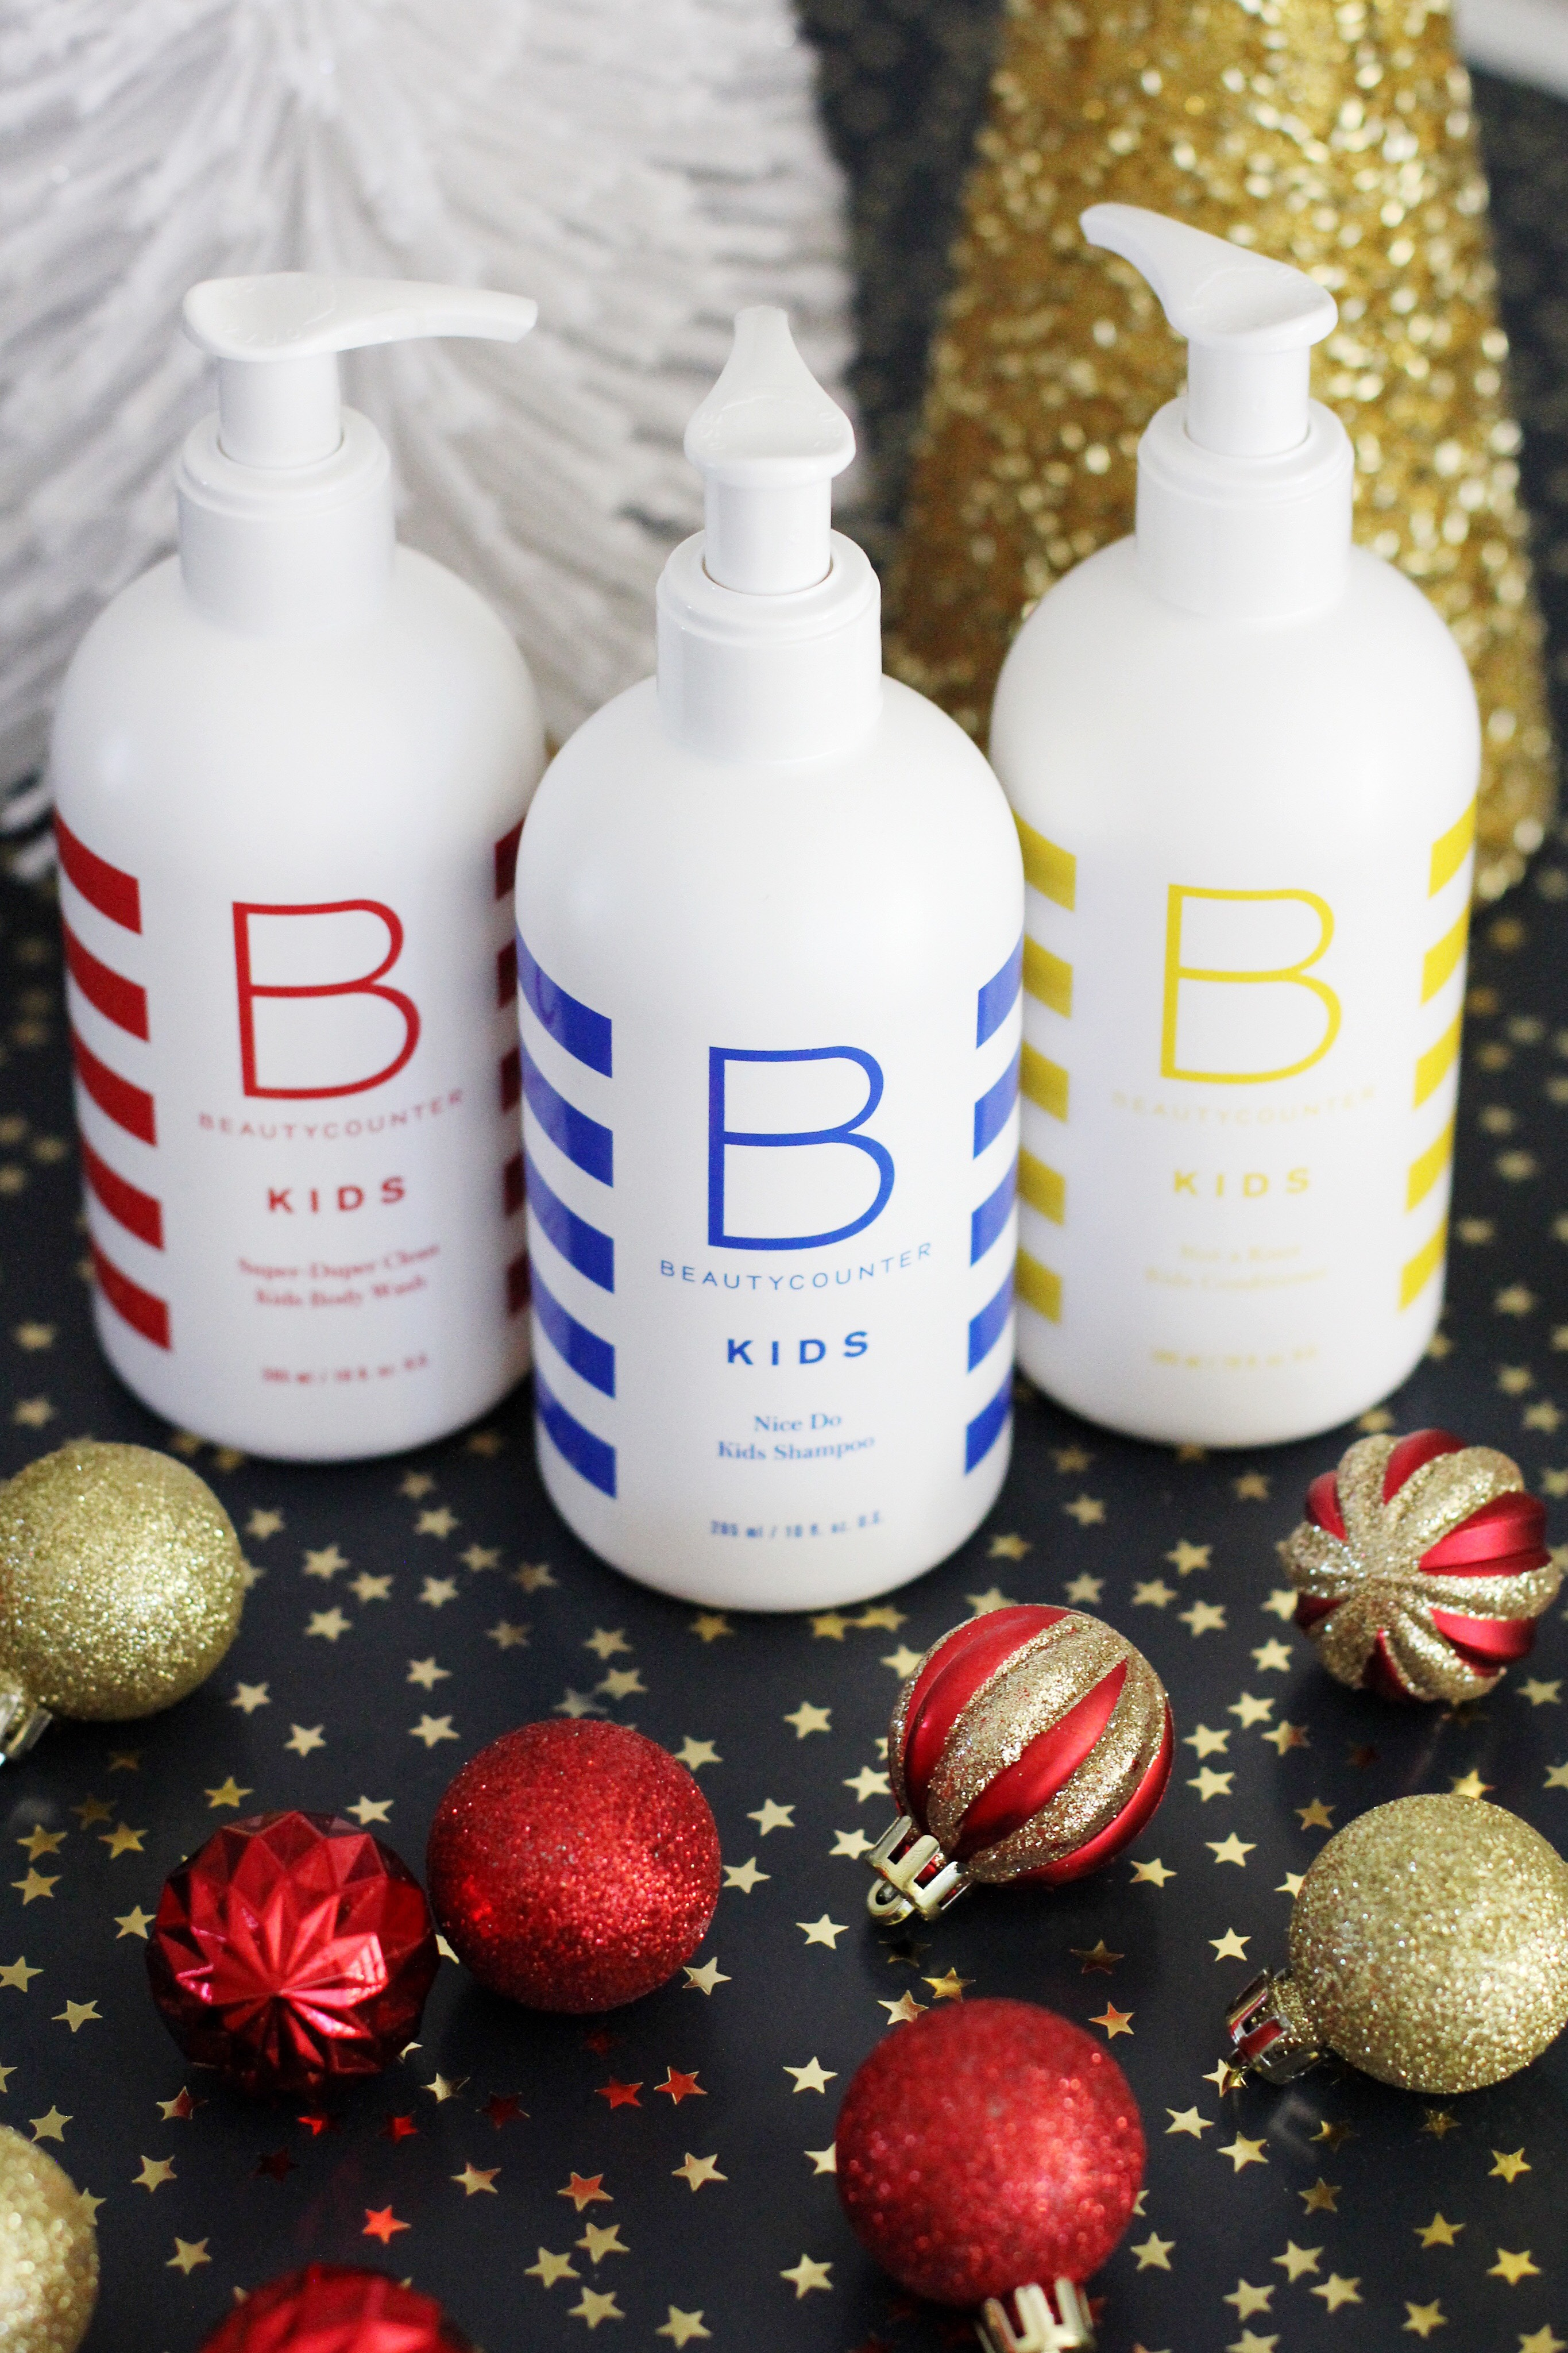 beauty counter kids products